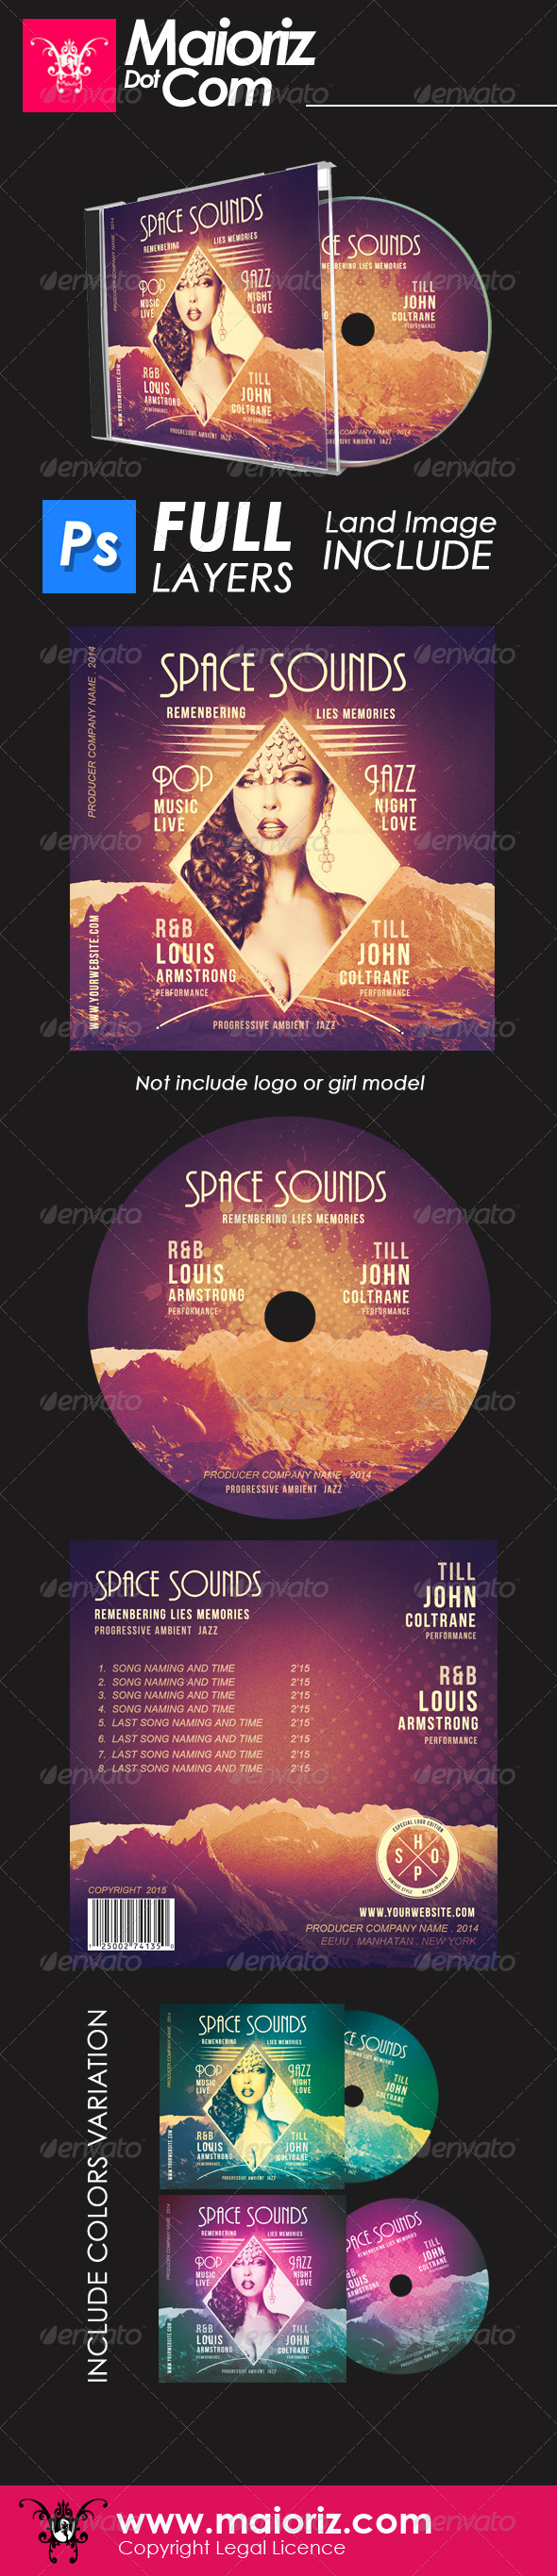 GraphicRiver Space Sounds Cd Artwork 6602217